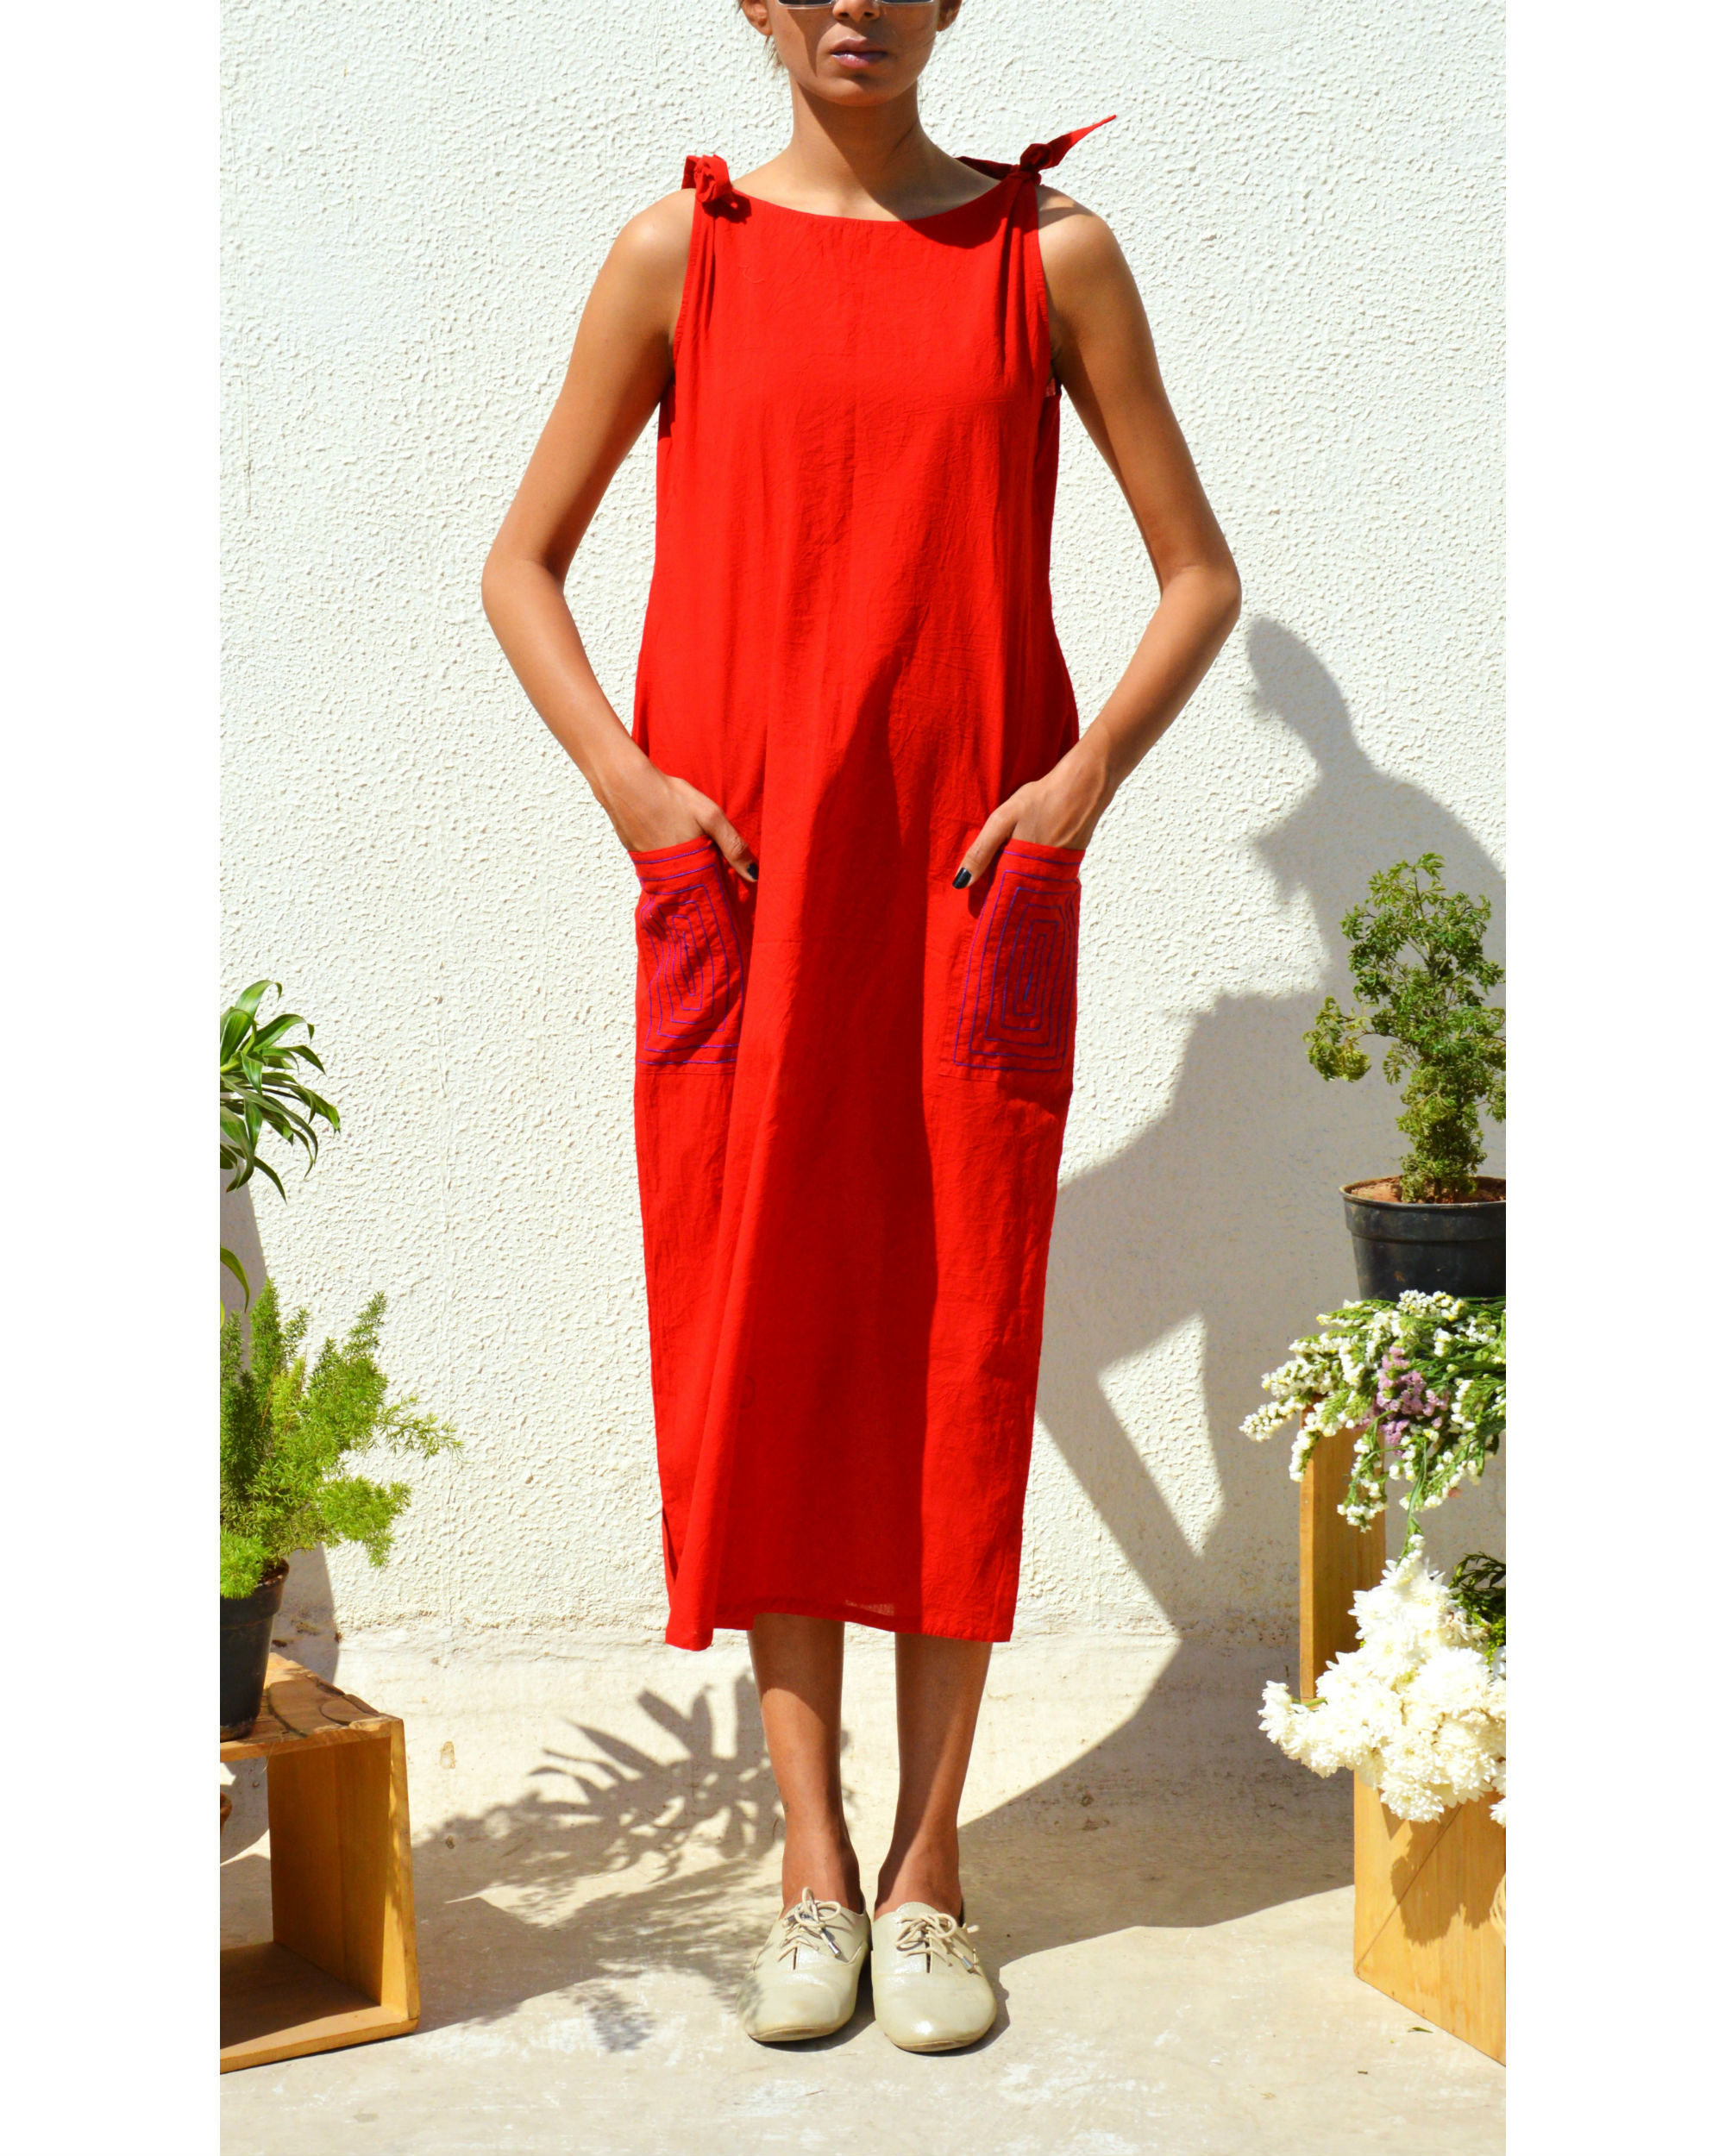 Bright red knot dress